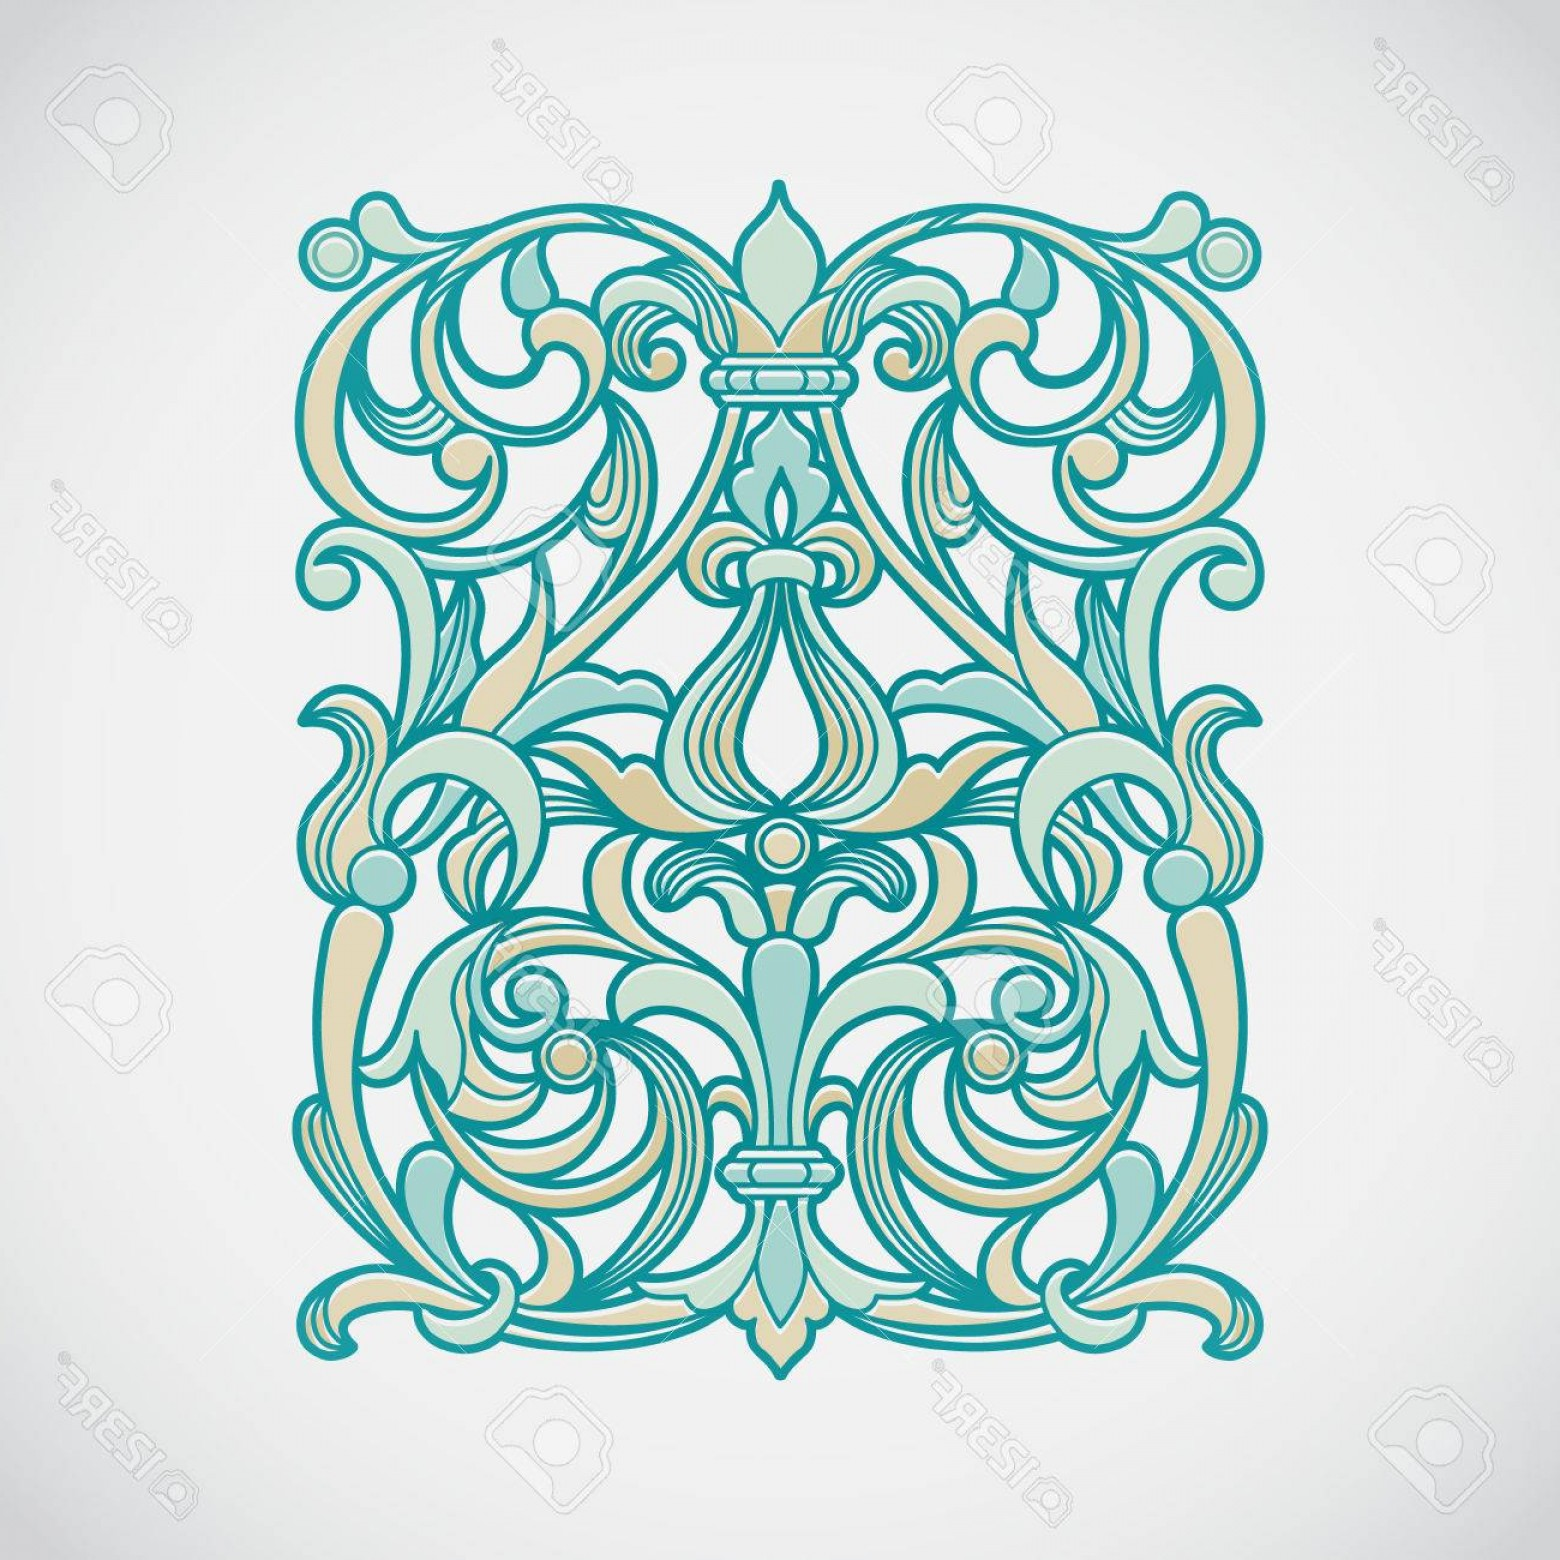 Aqua Victorian Vectors: Photostock Vector Vector Floral Pattern In Victorian Style On Scroll Work Background Ornate Element For Design Ornamen